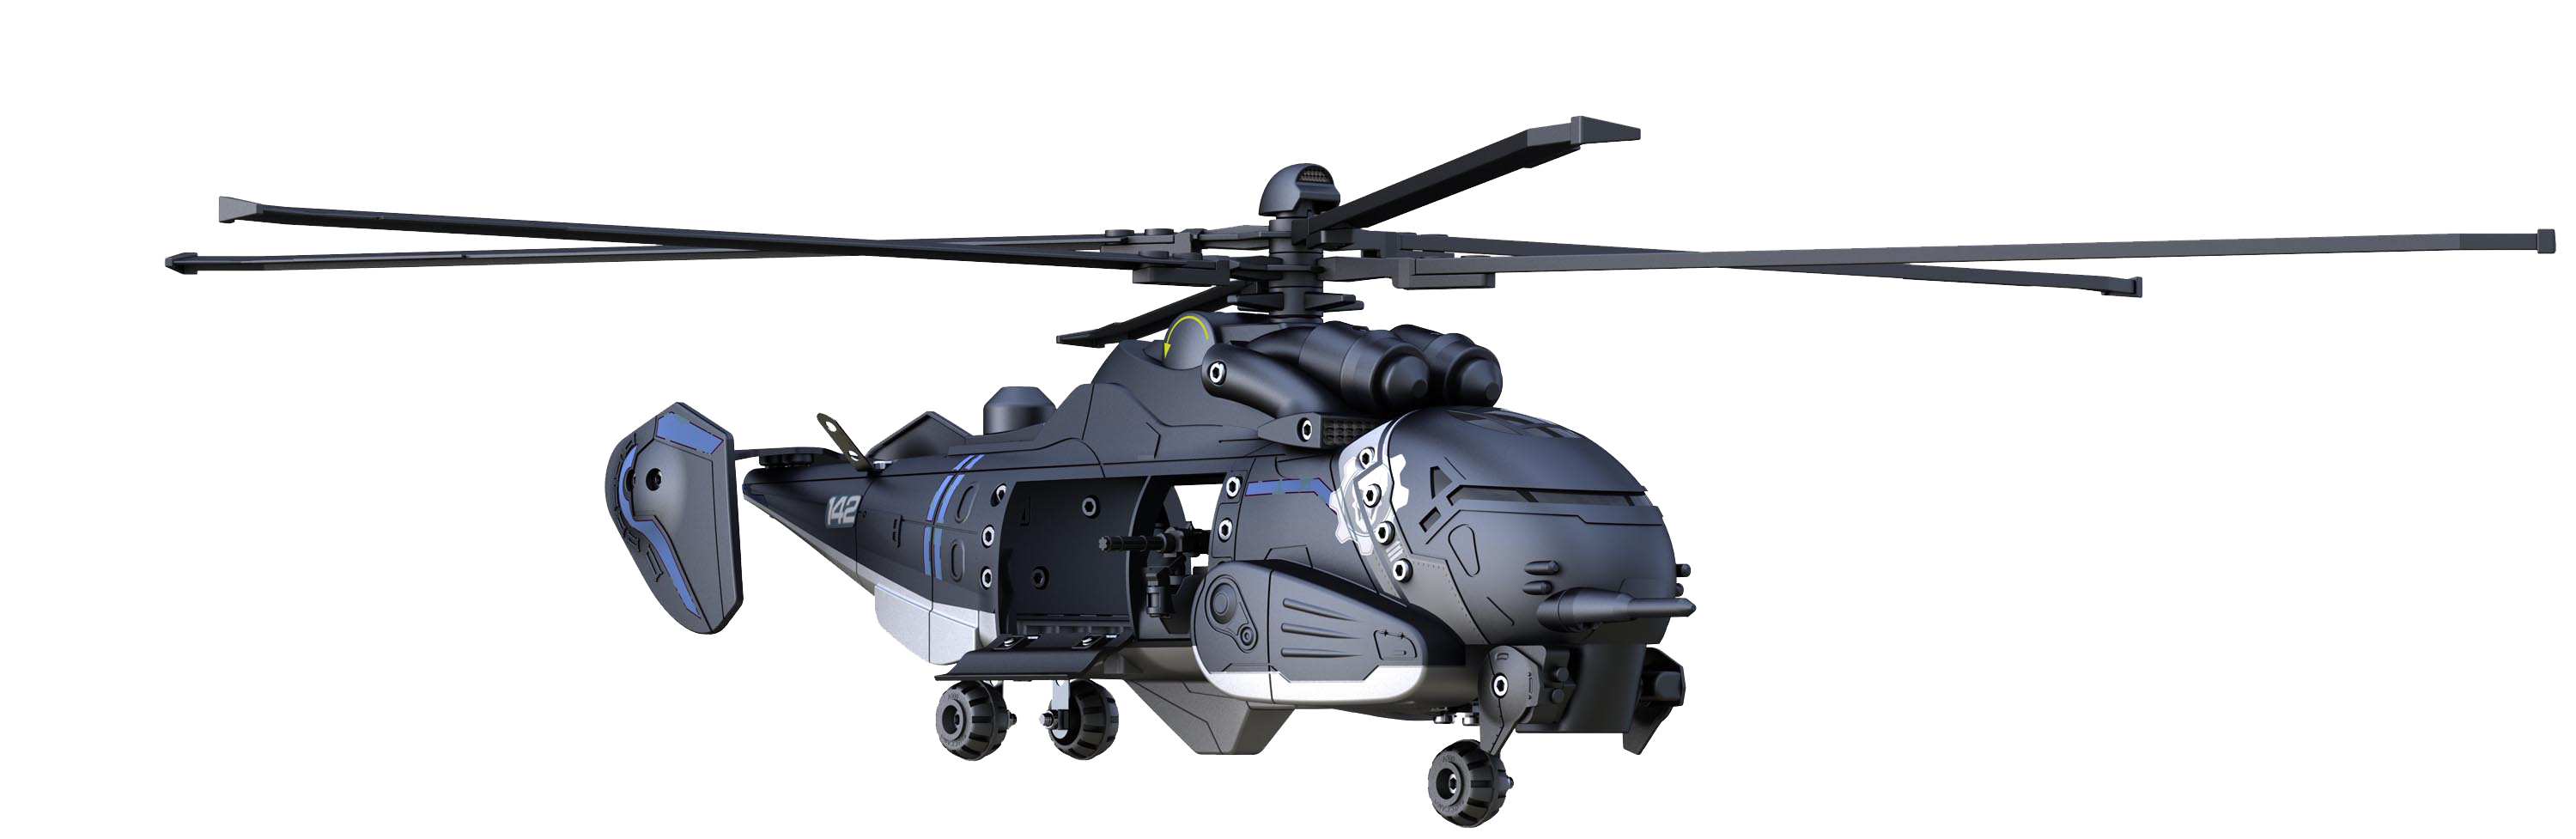 Army png transparent free. Helicopter clipart attack helicopter